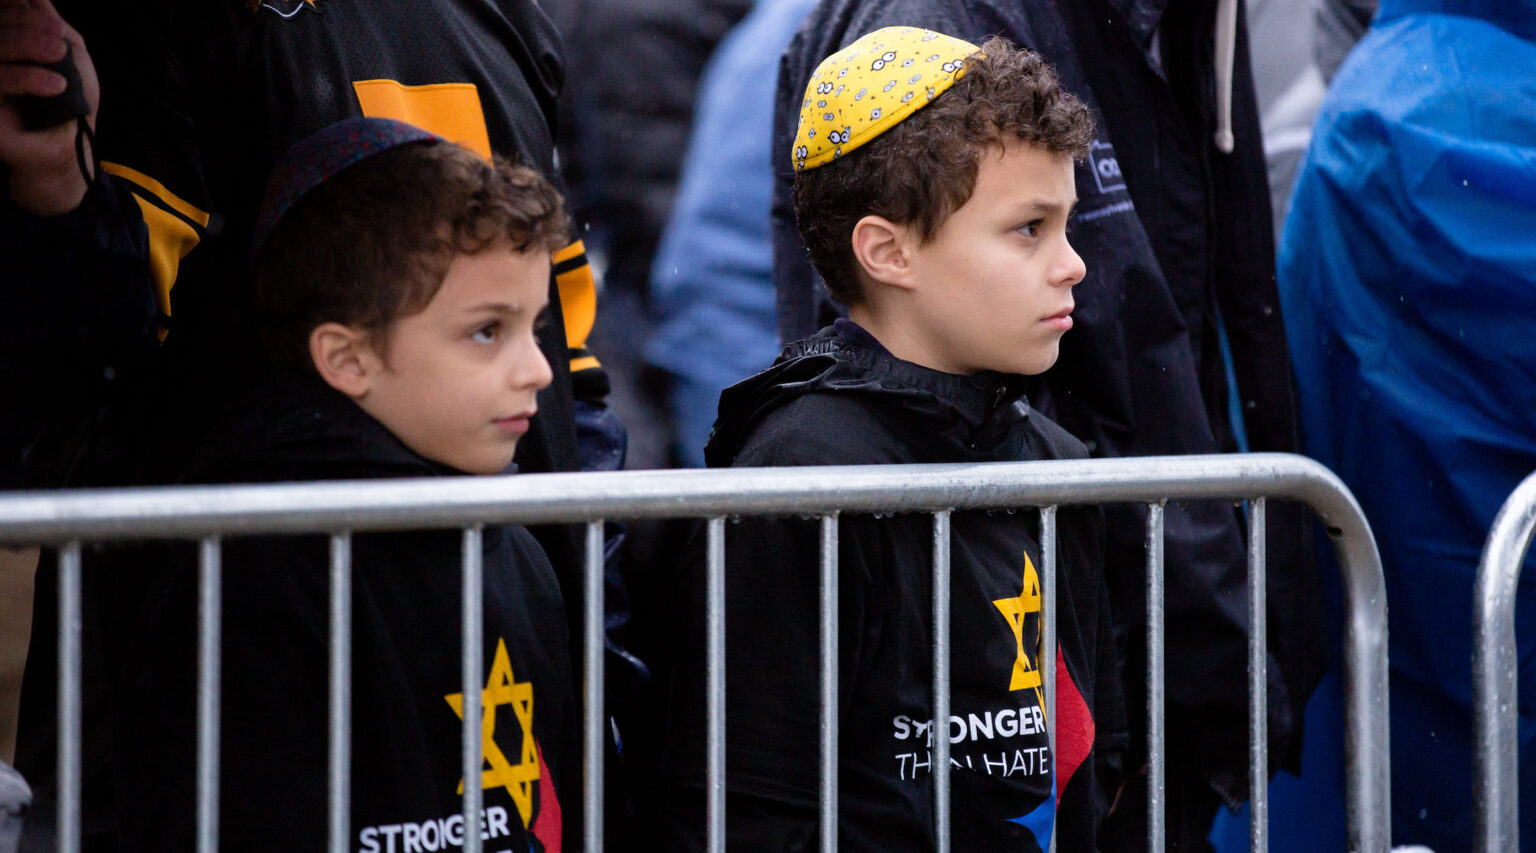 Children attend a rally for peace and unity in Point State Park in Pittsburgh, Pennsylvania to remember victims of the Tree of Life synagogue shooting, Nov. 9, 2018. (Photo/JTA-Flickr Commons-Gov. Tom Wolf)